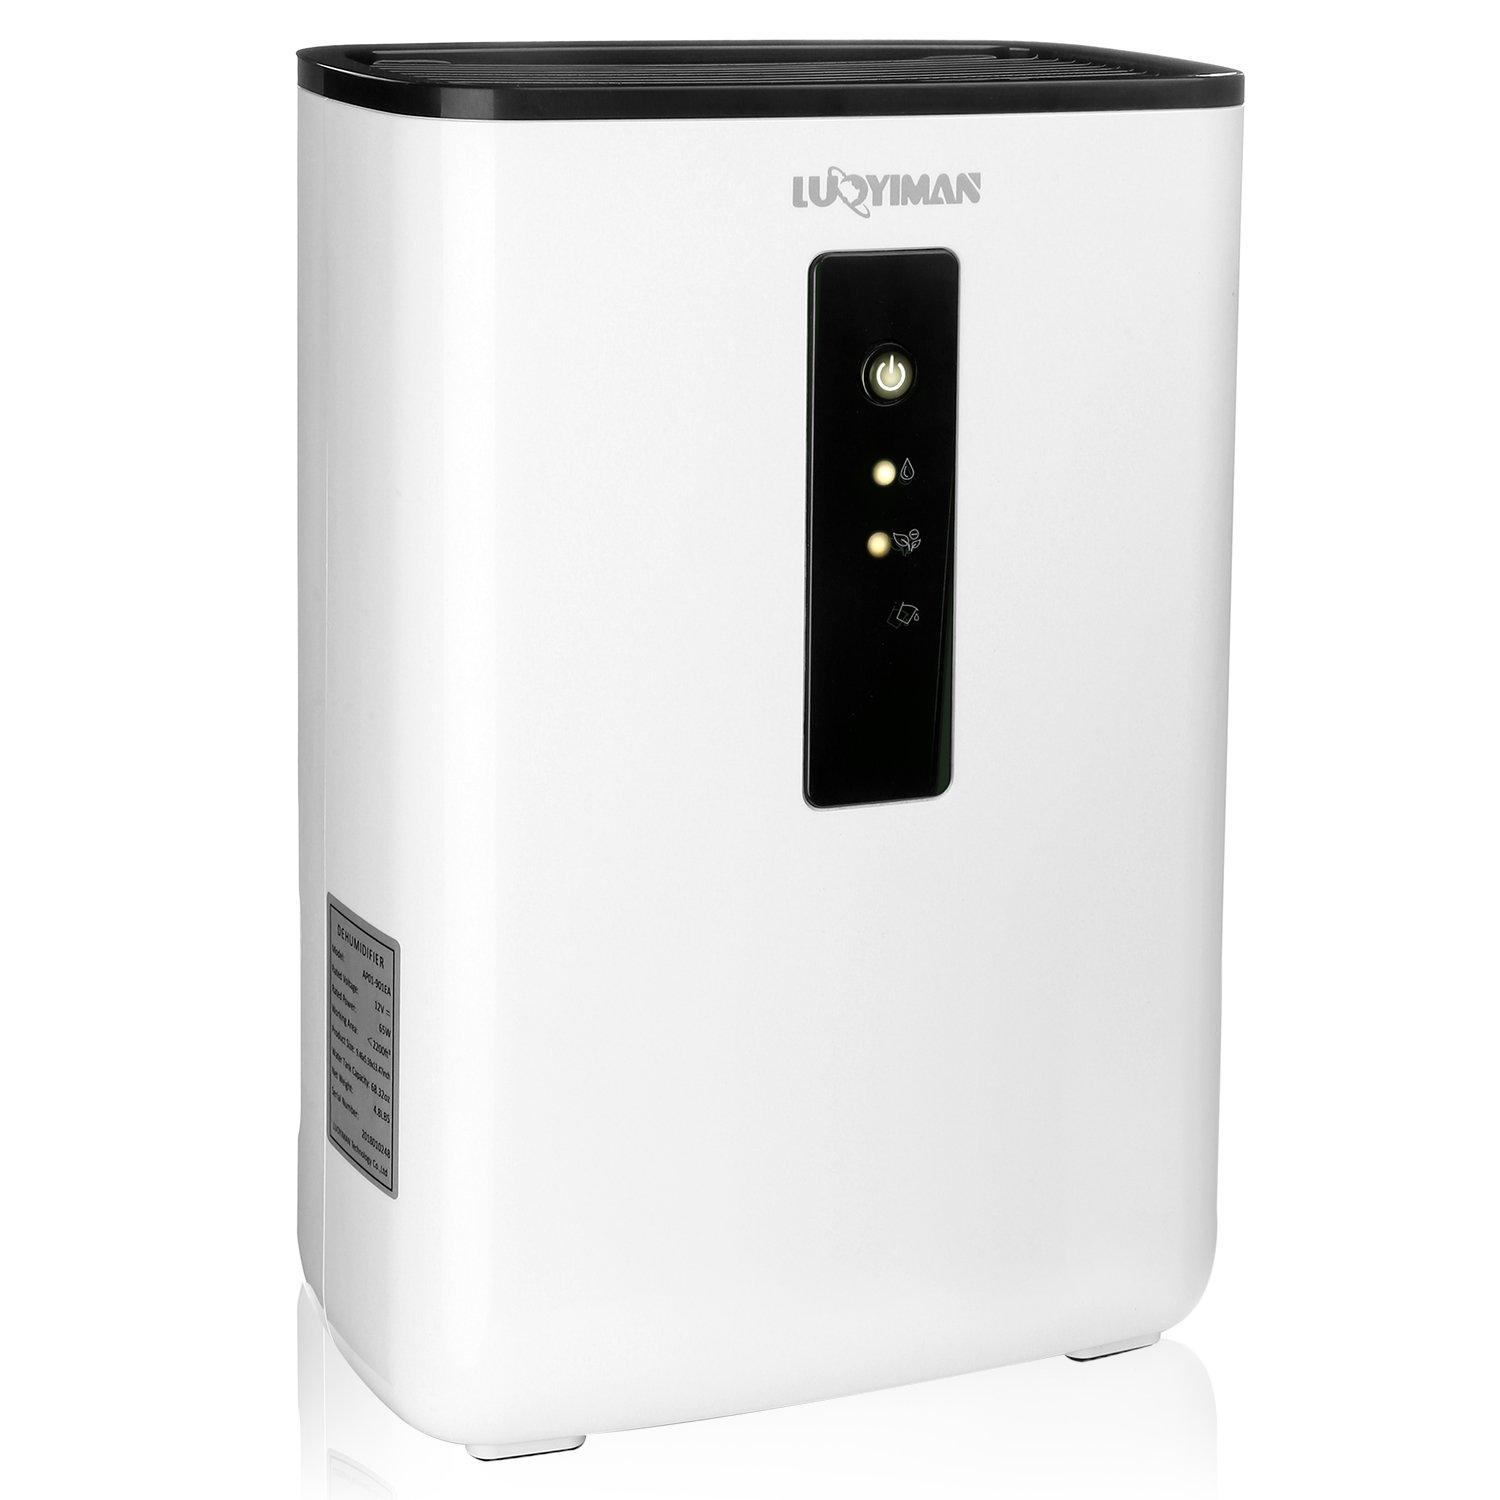 LUOYIMAN Dehumidifier Electric Home Dehumidifier Quiet Operation with UV Sterilization (2.5 Liter) by LUOYIMAN (Image #1)